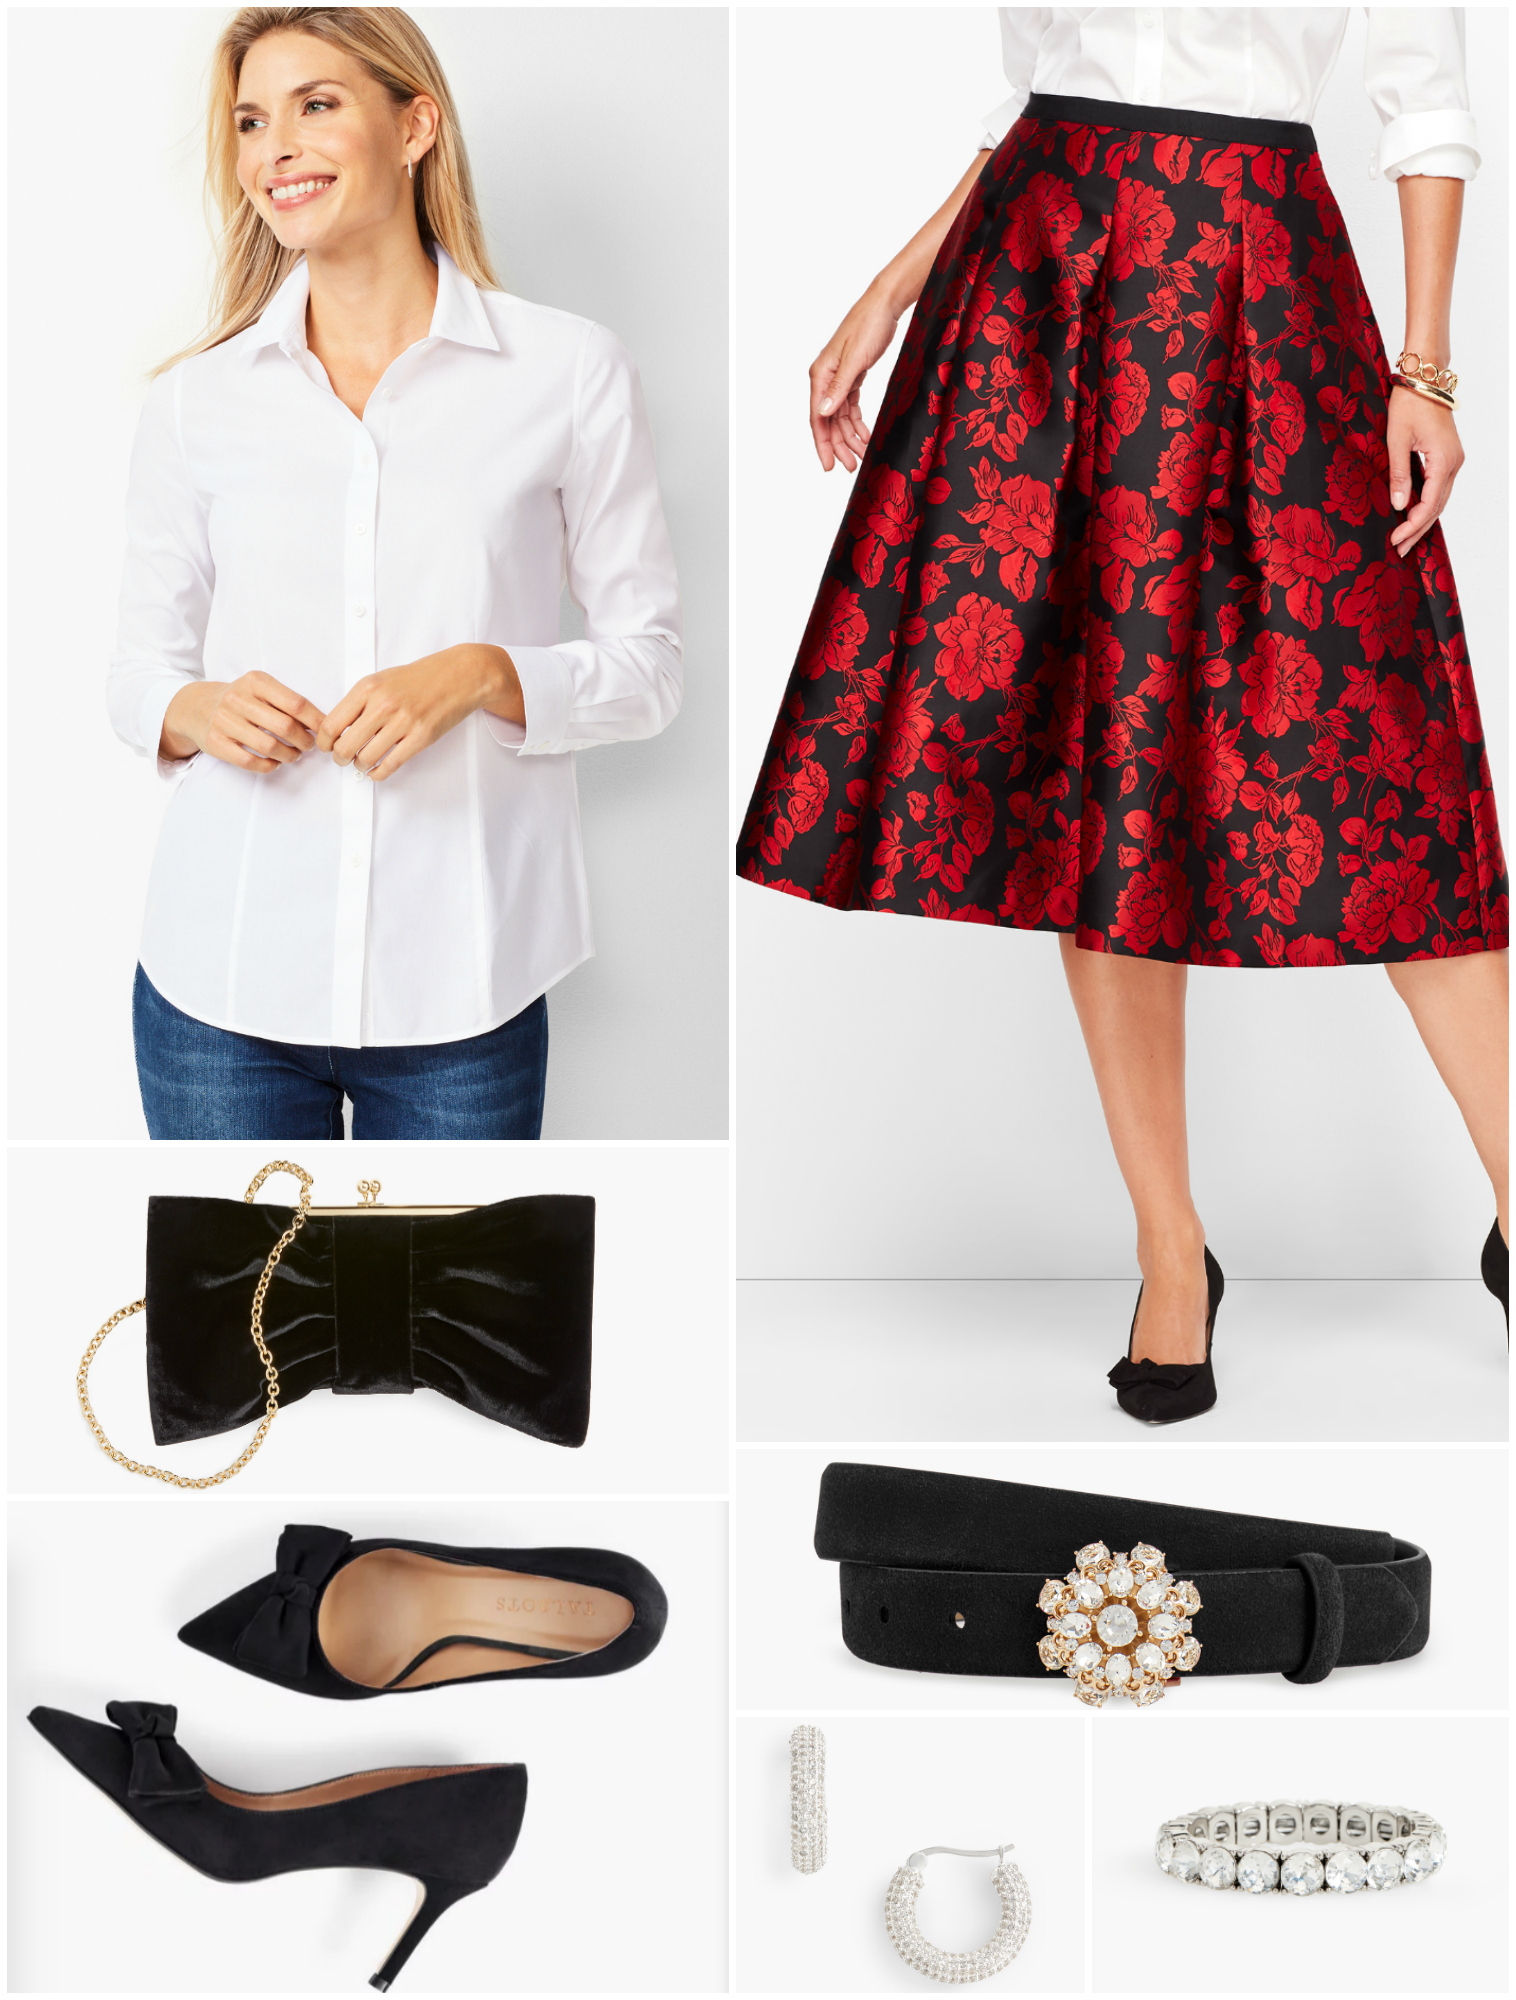 Adding a belt to the floral jacquard skirt and crisp white shirt pulls the two pieces together and highlights the waist.  Consider cuffing the sleeves and popping the collar to give a relaxed vibe.